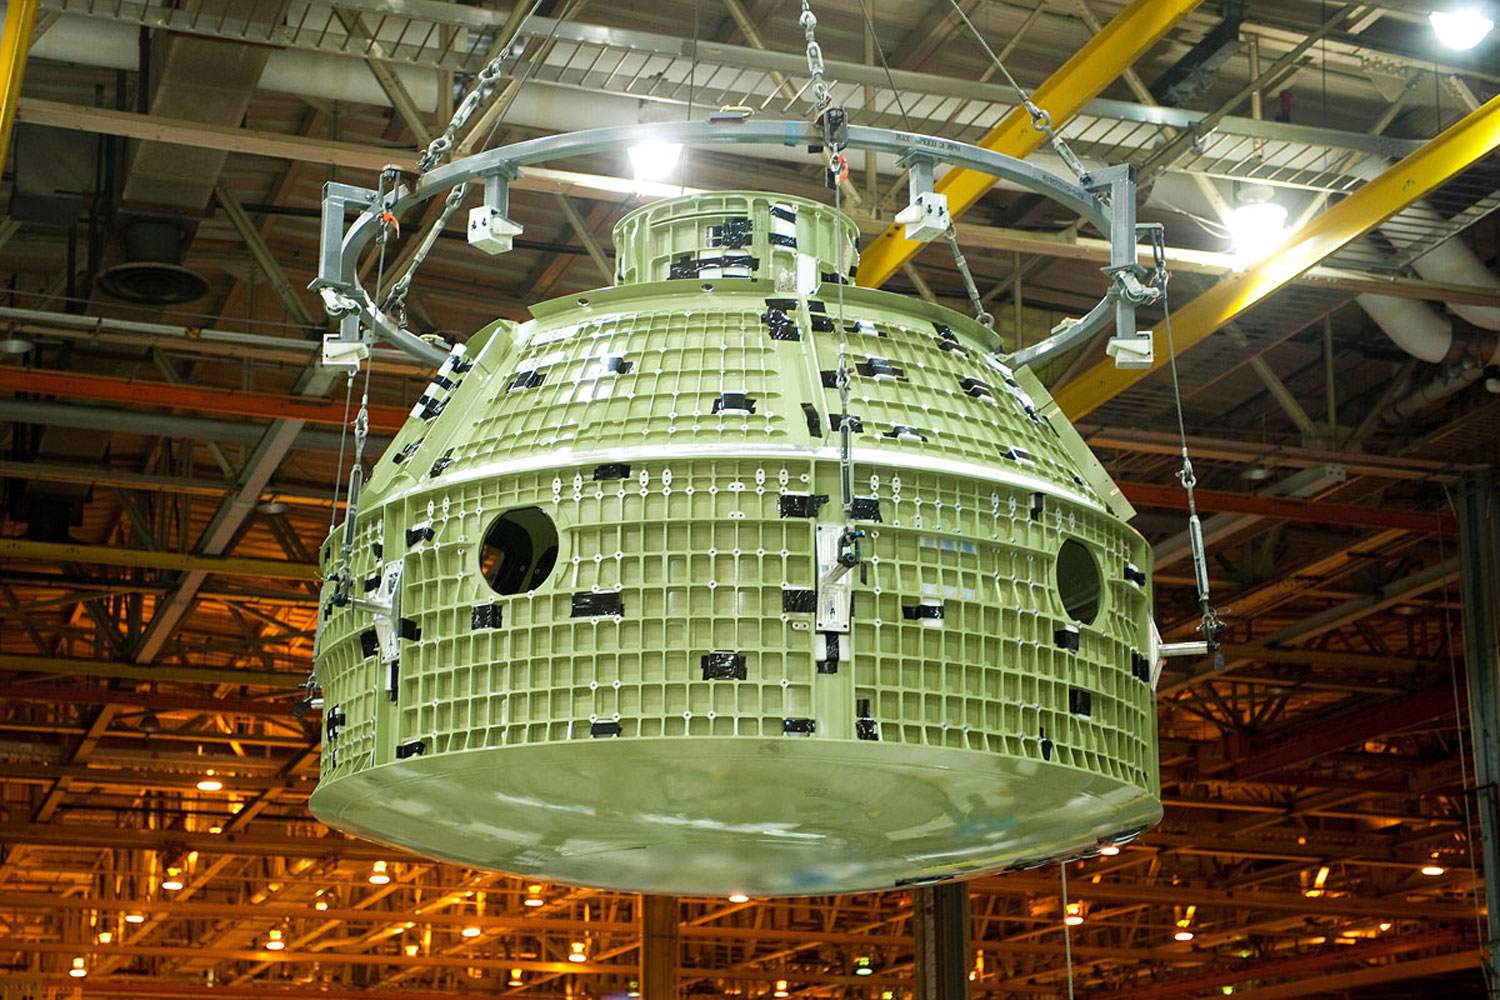 The NASA team at the Michoud Assembly Facility in New Orleans completed the final weld on the first space-bound Orion capsule, on June 22, 2012.